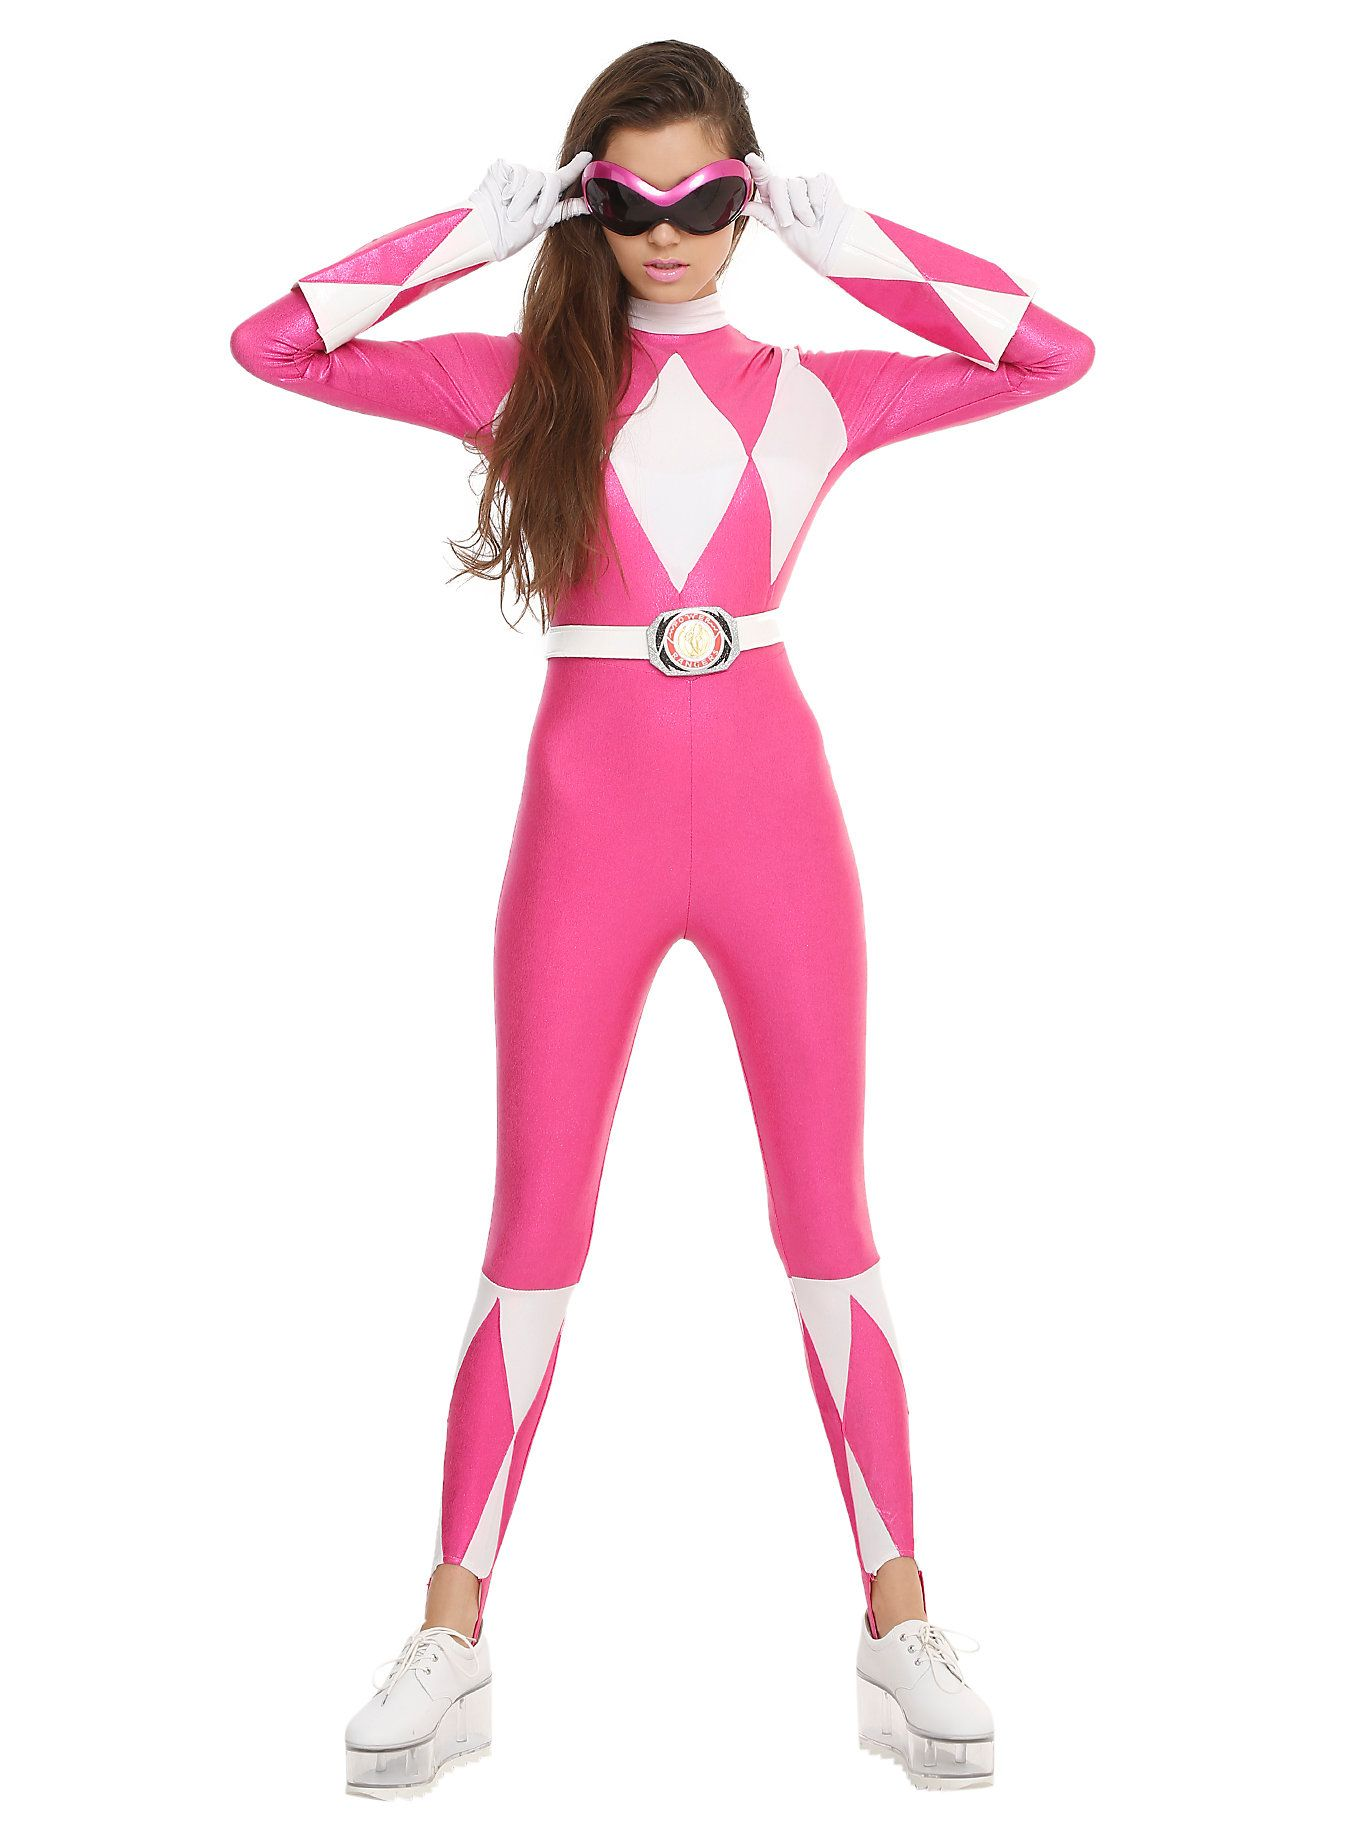 Mighty Morphin Power Rangers Pink Ranger Costume, | Costumes ...